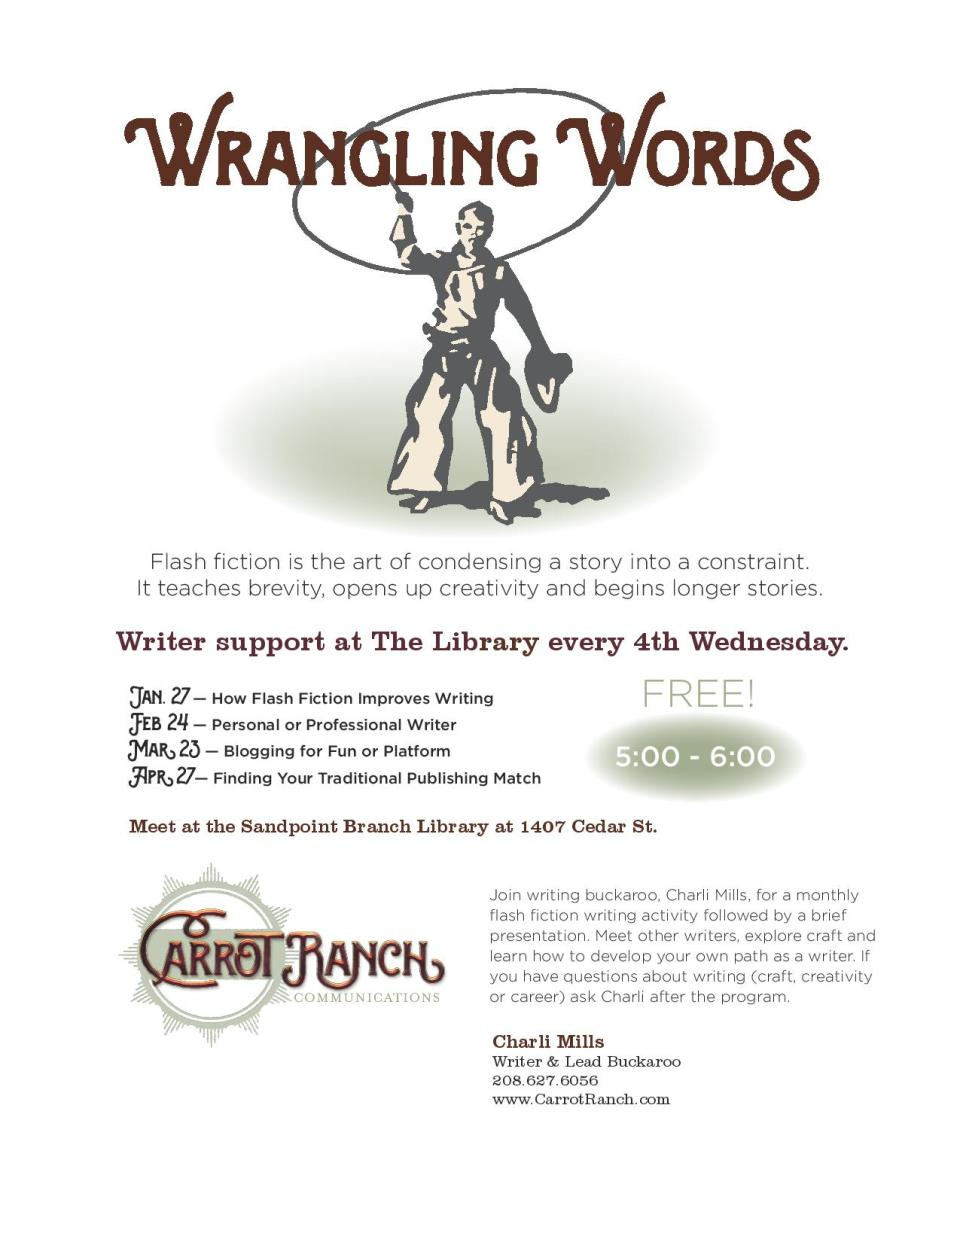 Wrangling Words Flyer Image